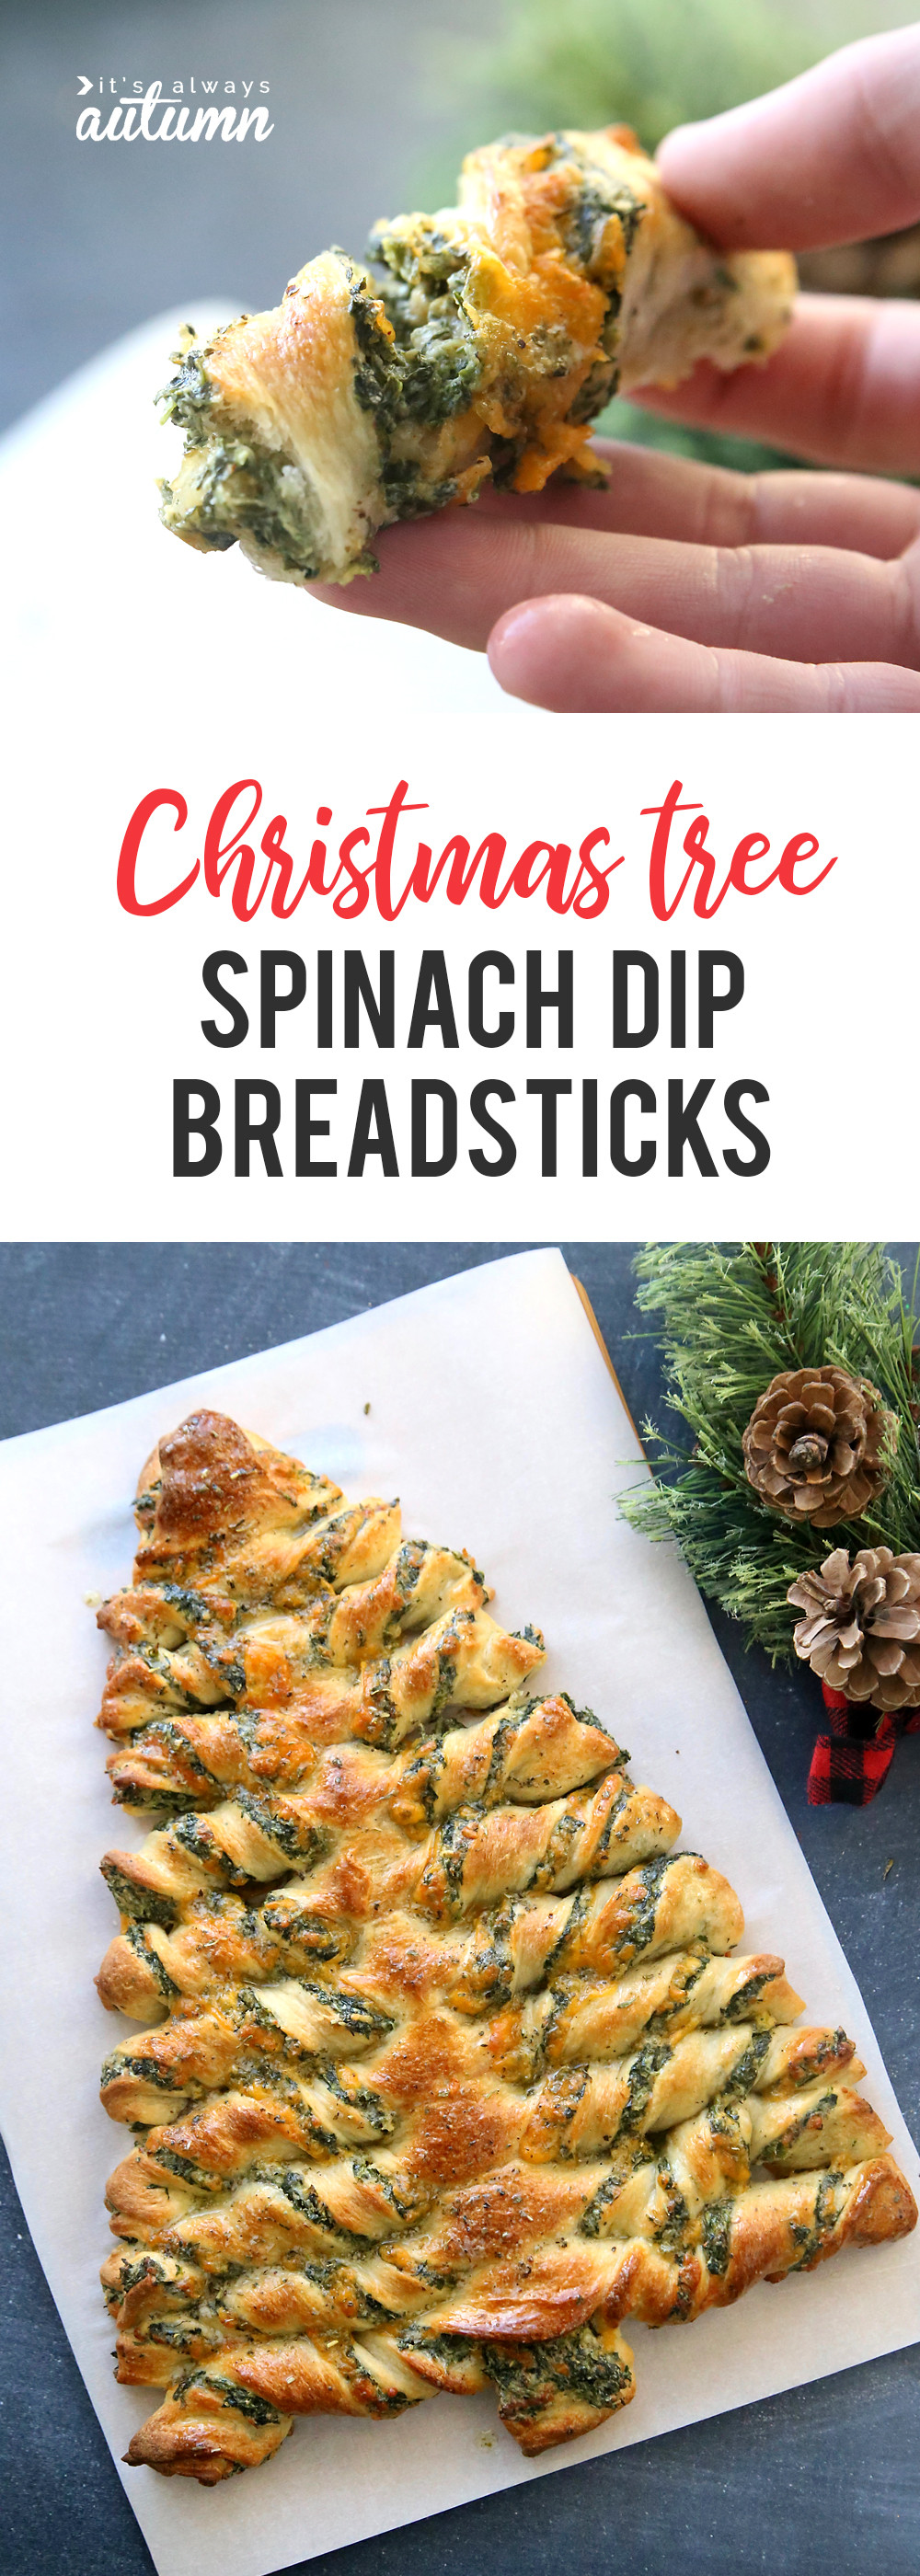 Pizza Dough Spinach Dip Christmas Tree  Christmas tree spinach dip breadsticks It s Always Autumn